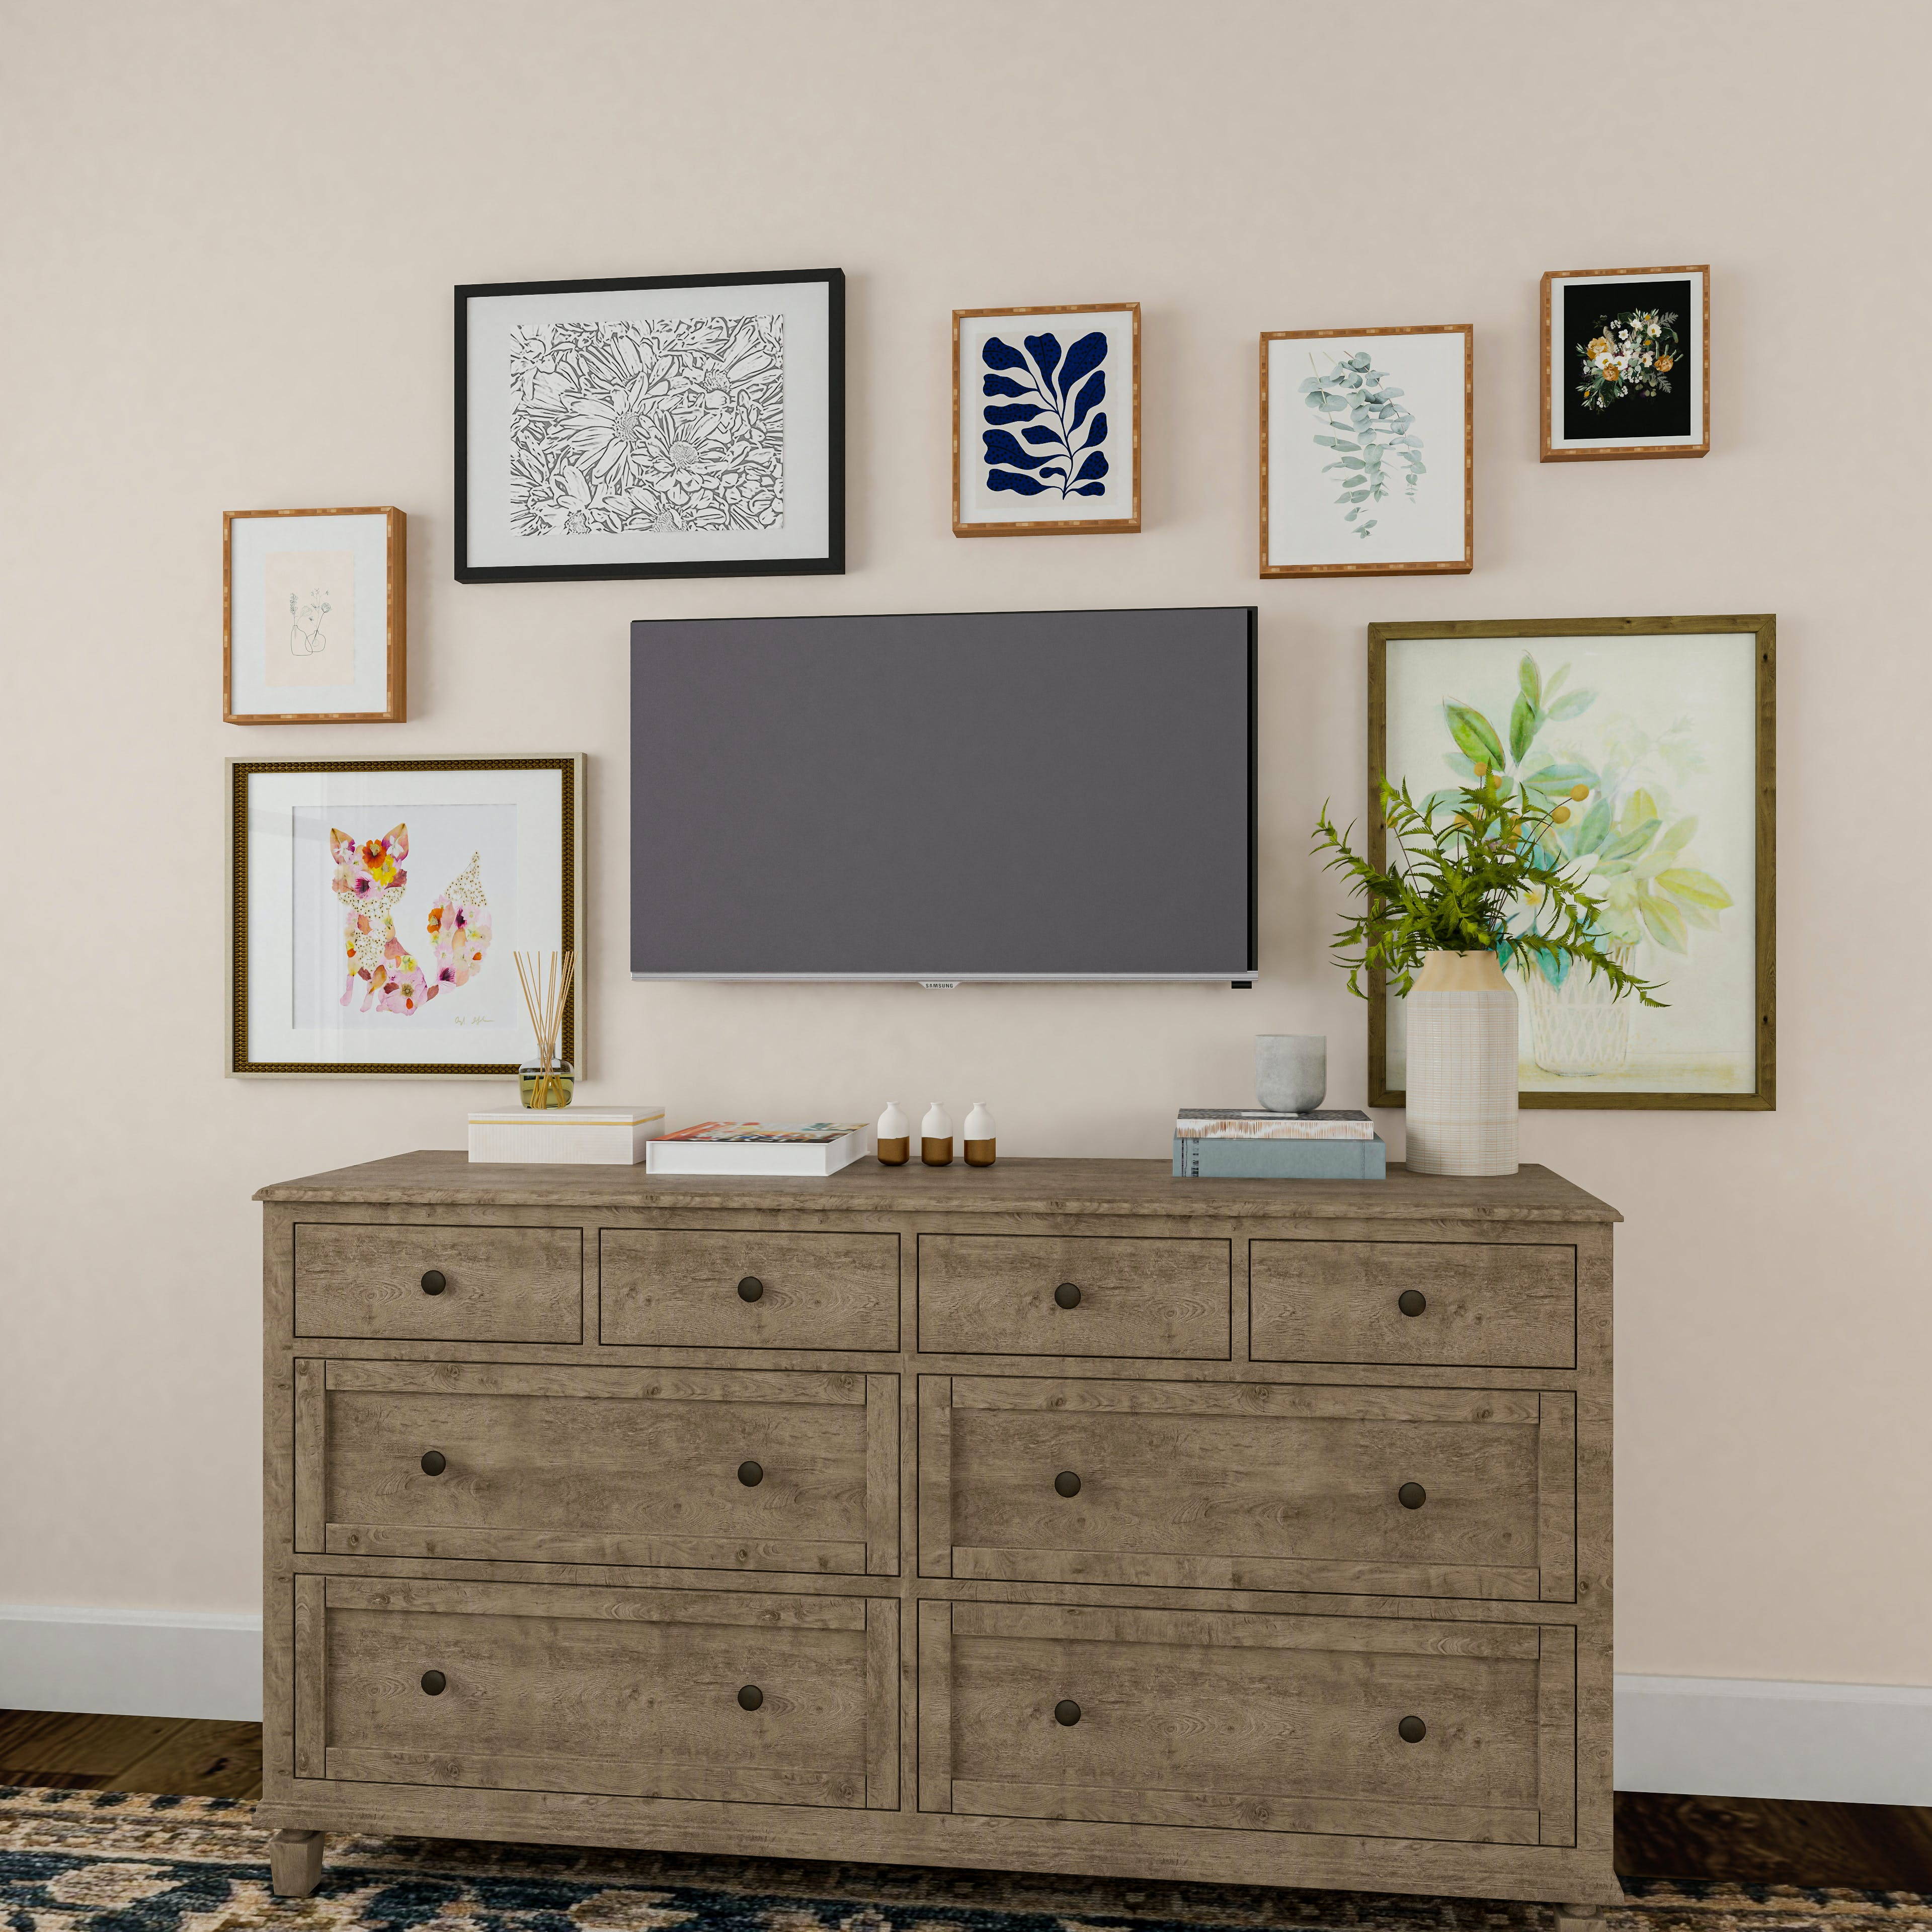 Television Gallery Wall